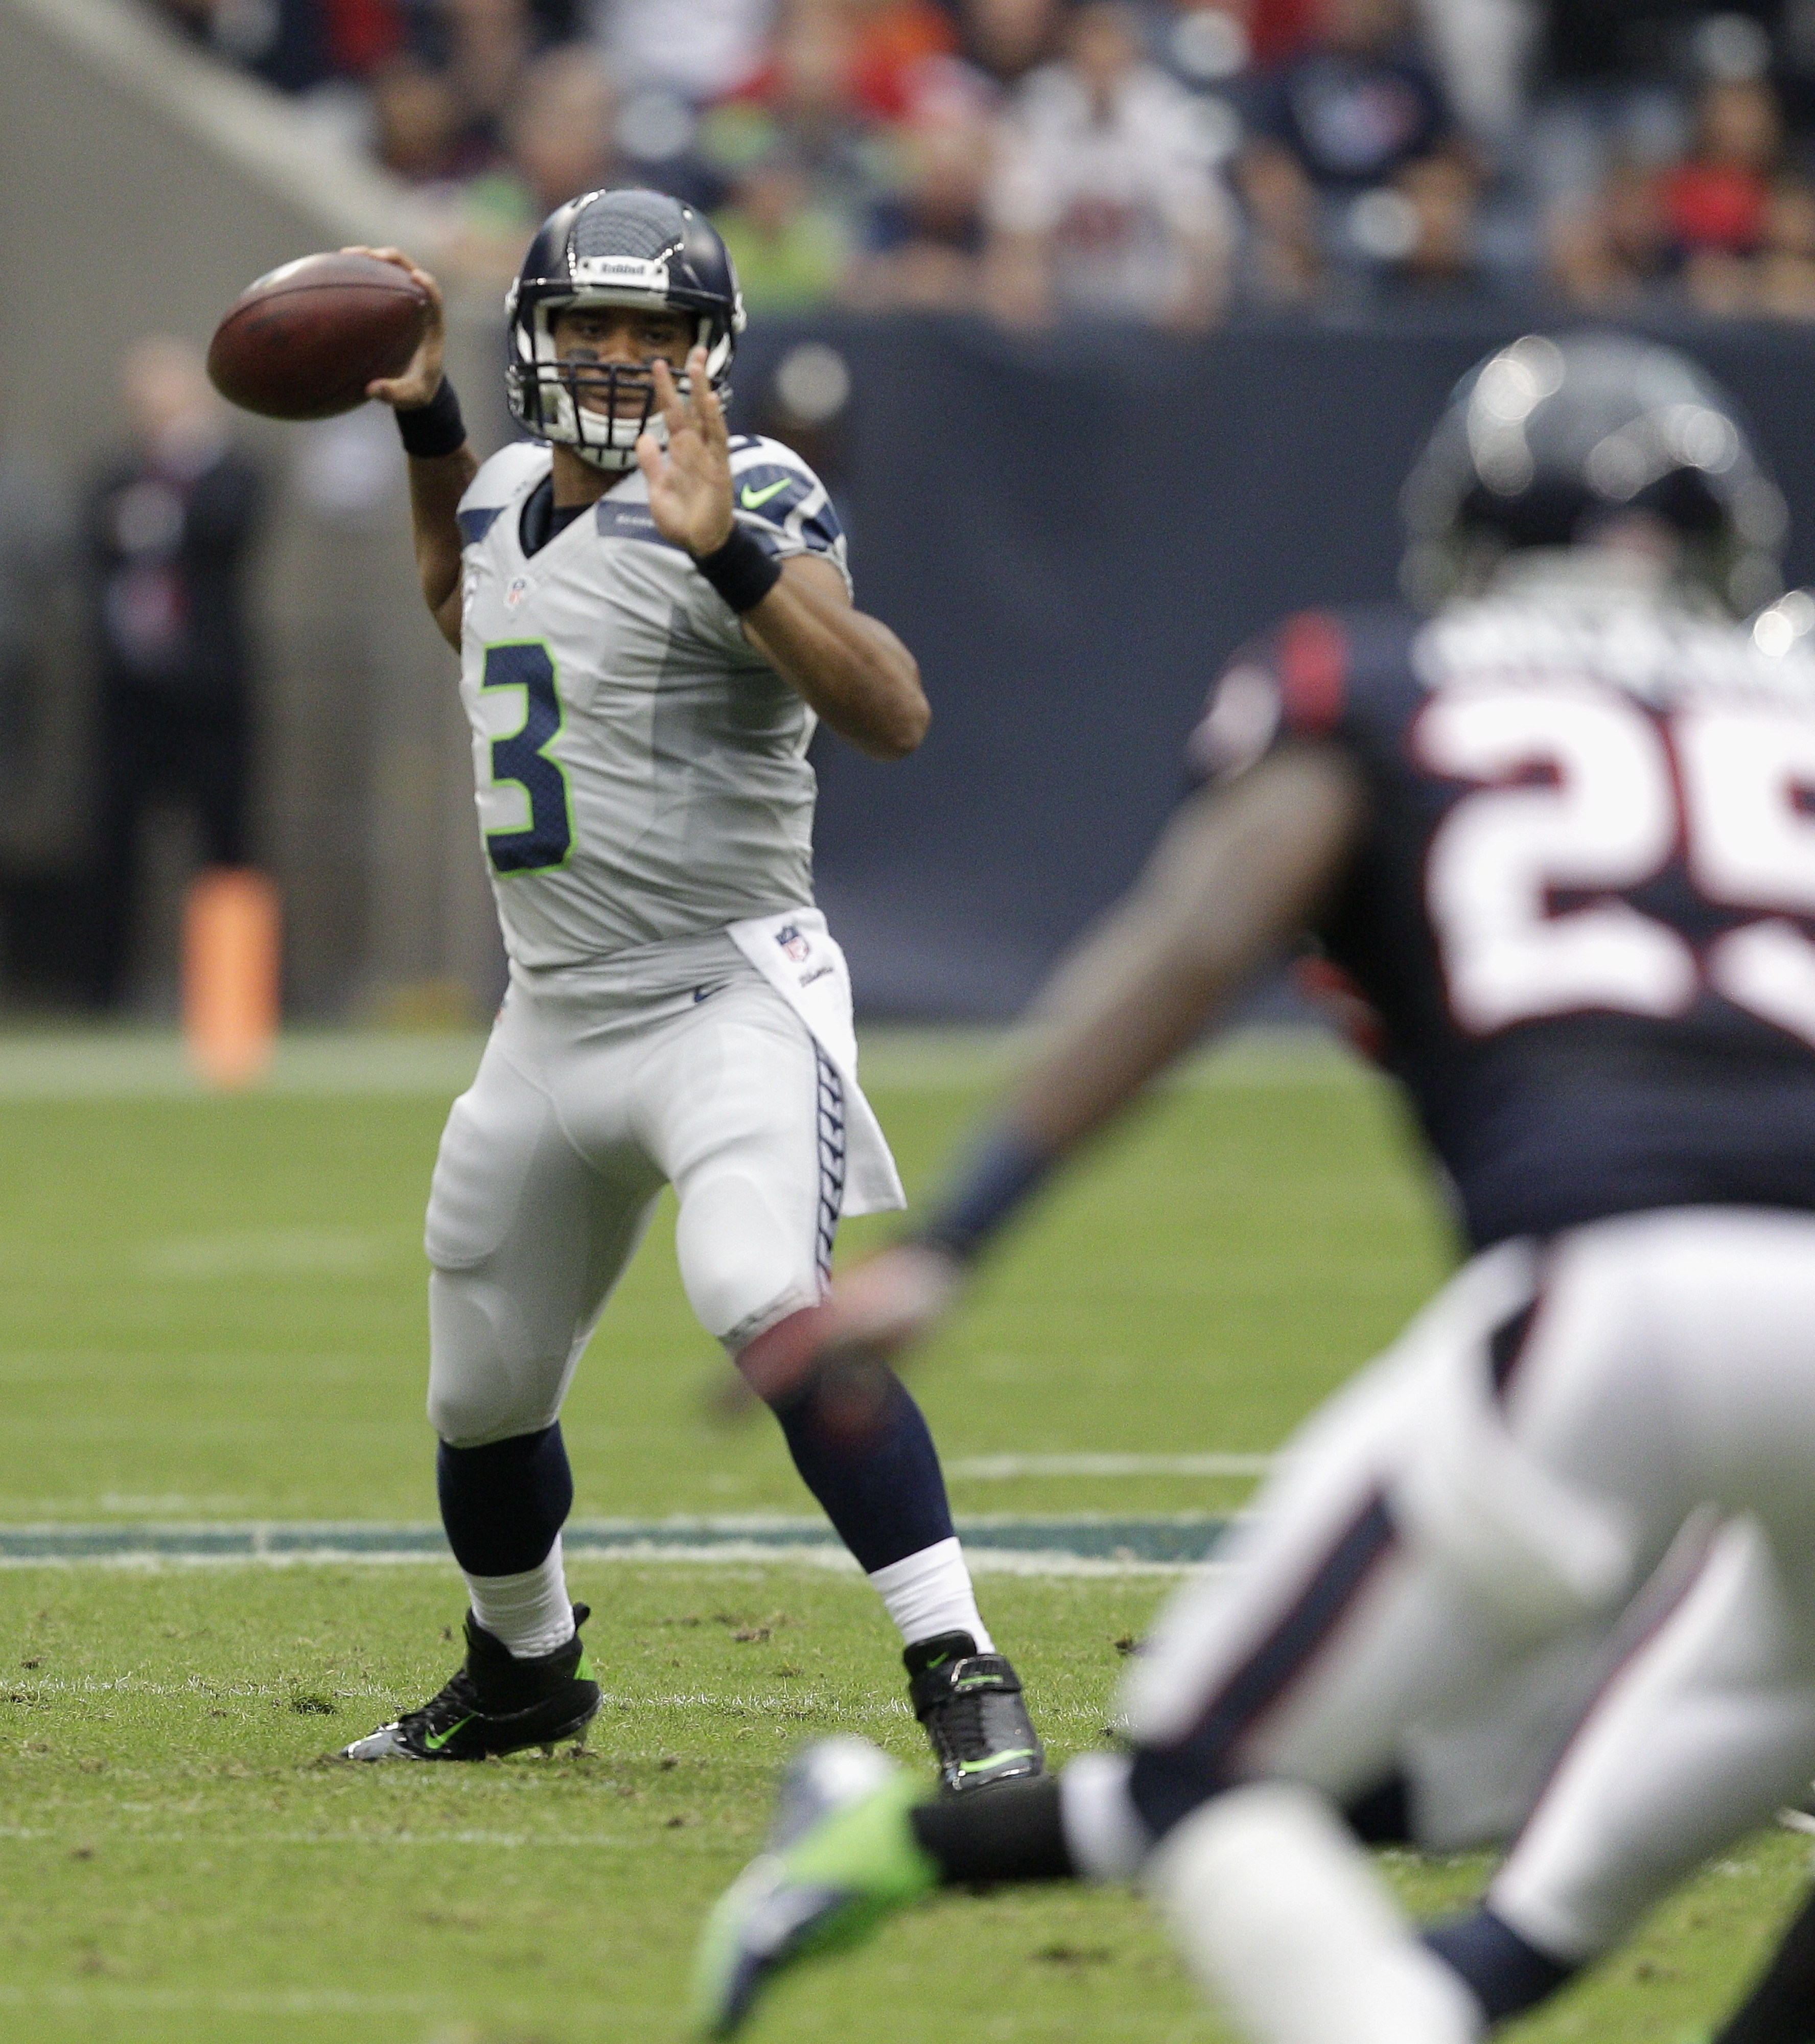 Seahawks vs. Texans 2013 results: Seattle rallies, wins in thrilling OT match